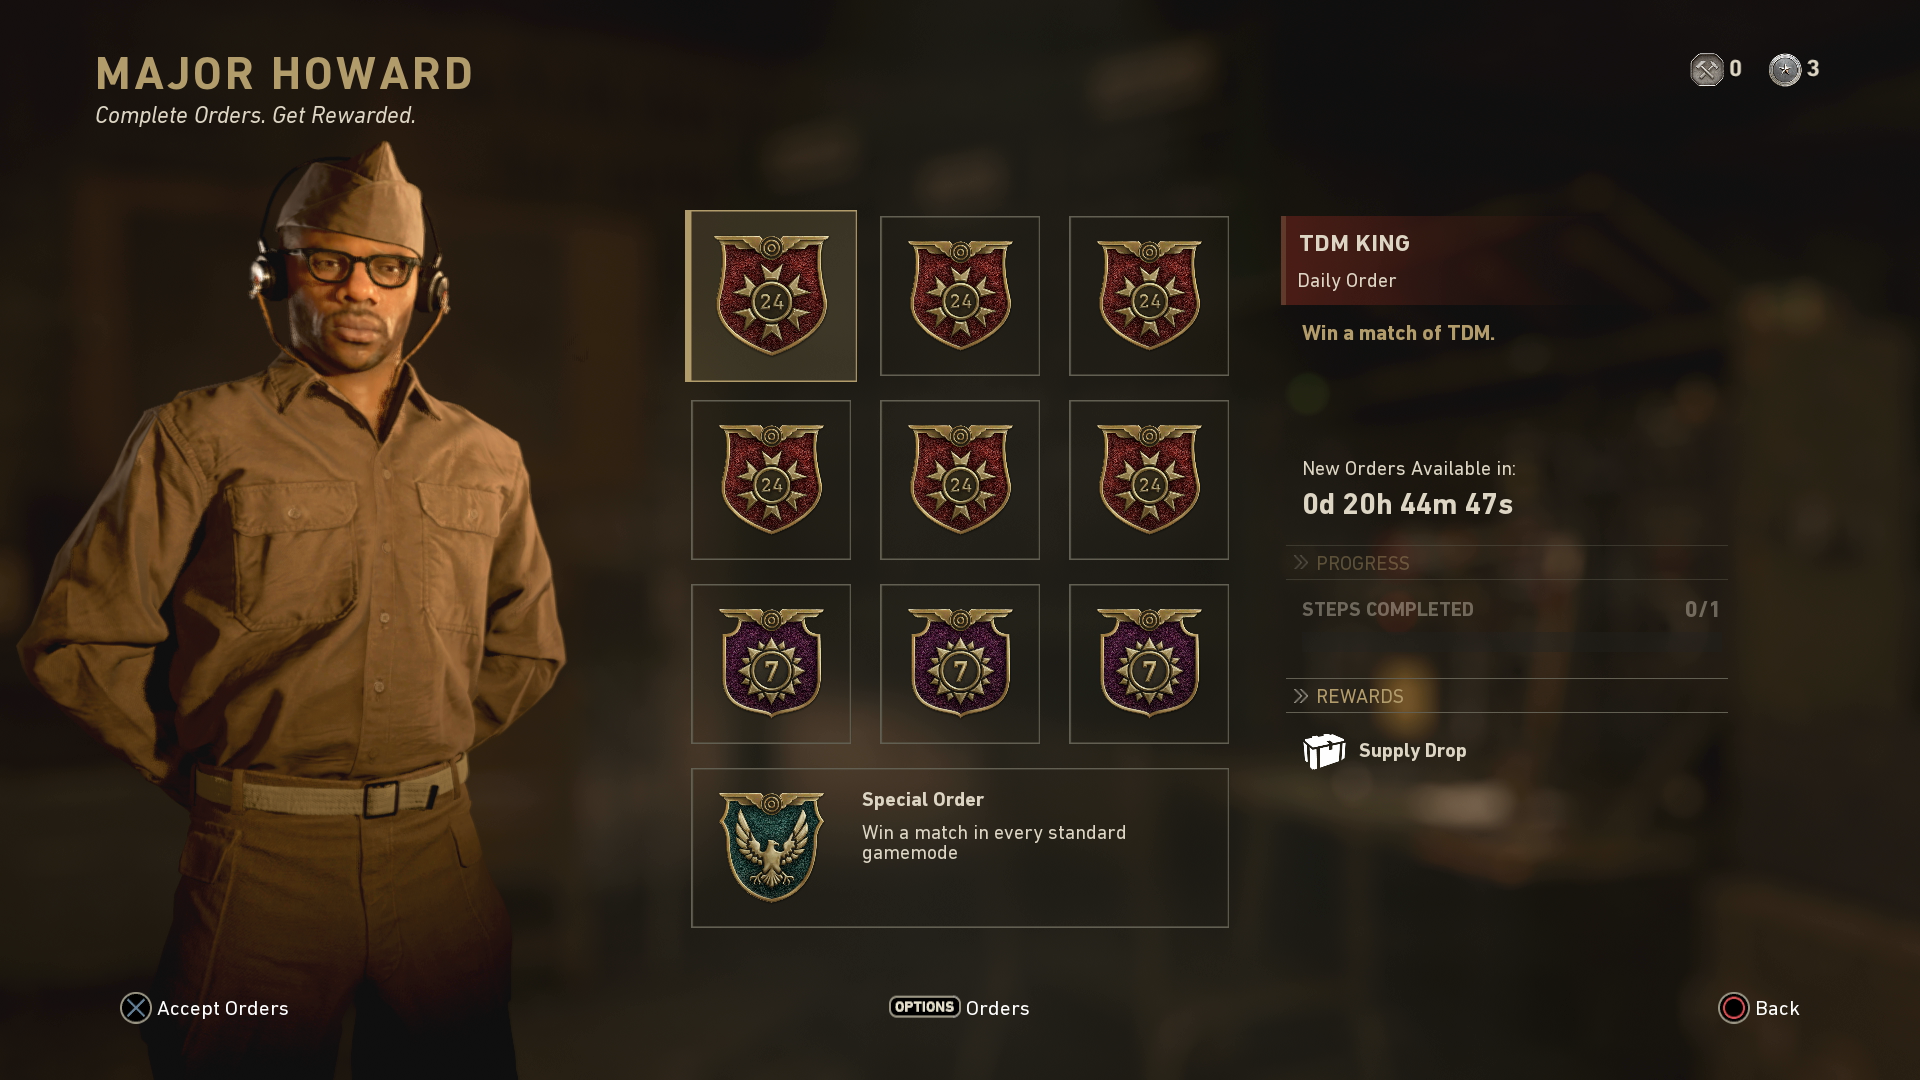 CoD WW2 Prestige Guide How to Level up and Earn XP Quickly Rank